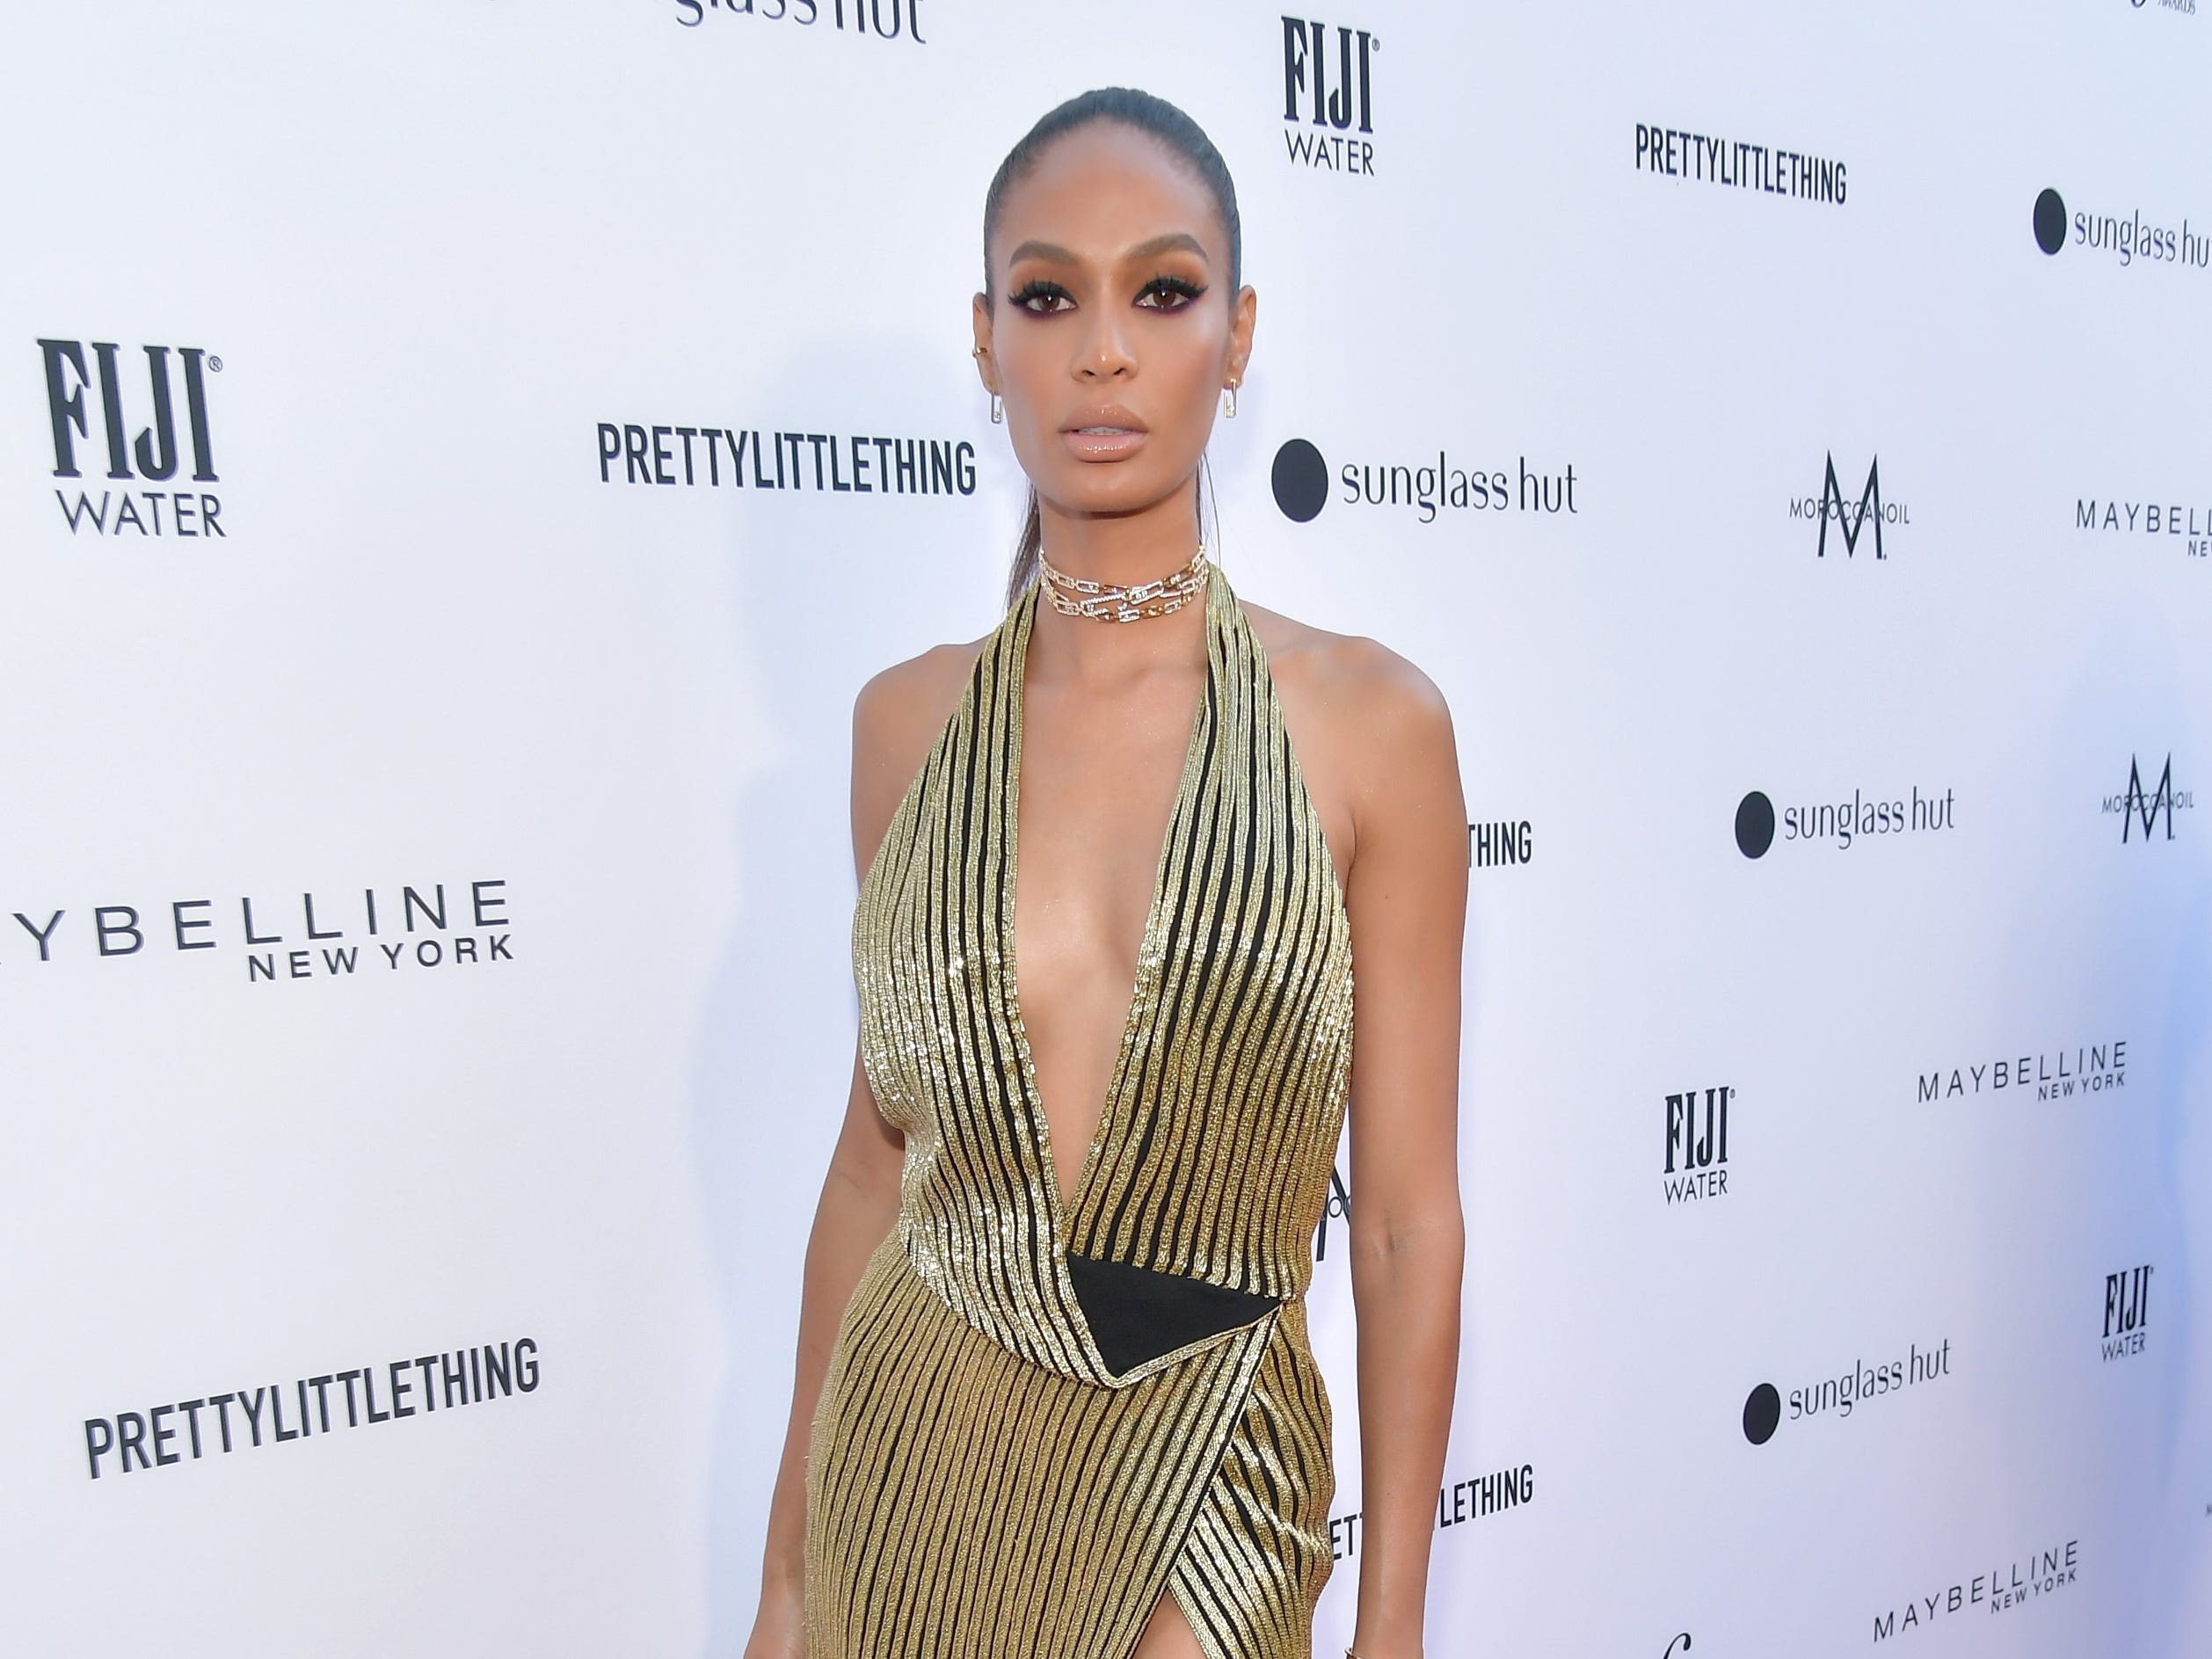 LOS ANGELES, CA - MARCH 17:  Joan Smalls attends The Daily Front Row Fashion LA Awards 2019 on March 17, 2019 in Los Angeles, California.  (Photo by Neilson Barnard/Getty Images for Daily Front Row) ORG XMIT: 775308010 ORIG FILE ID: 1131294894